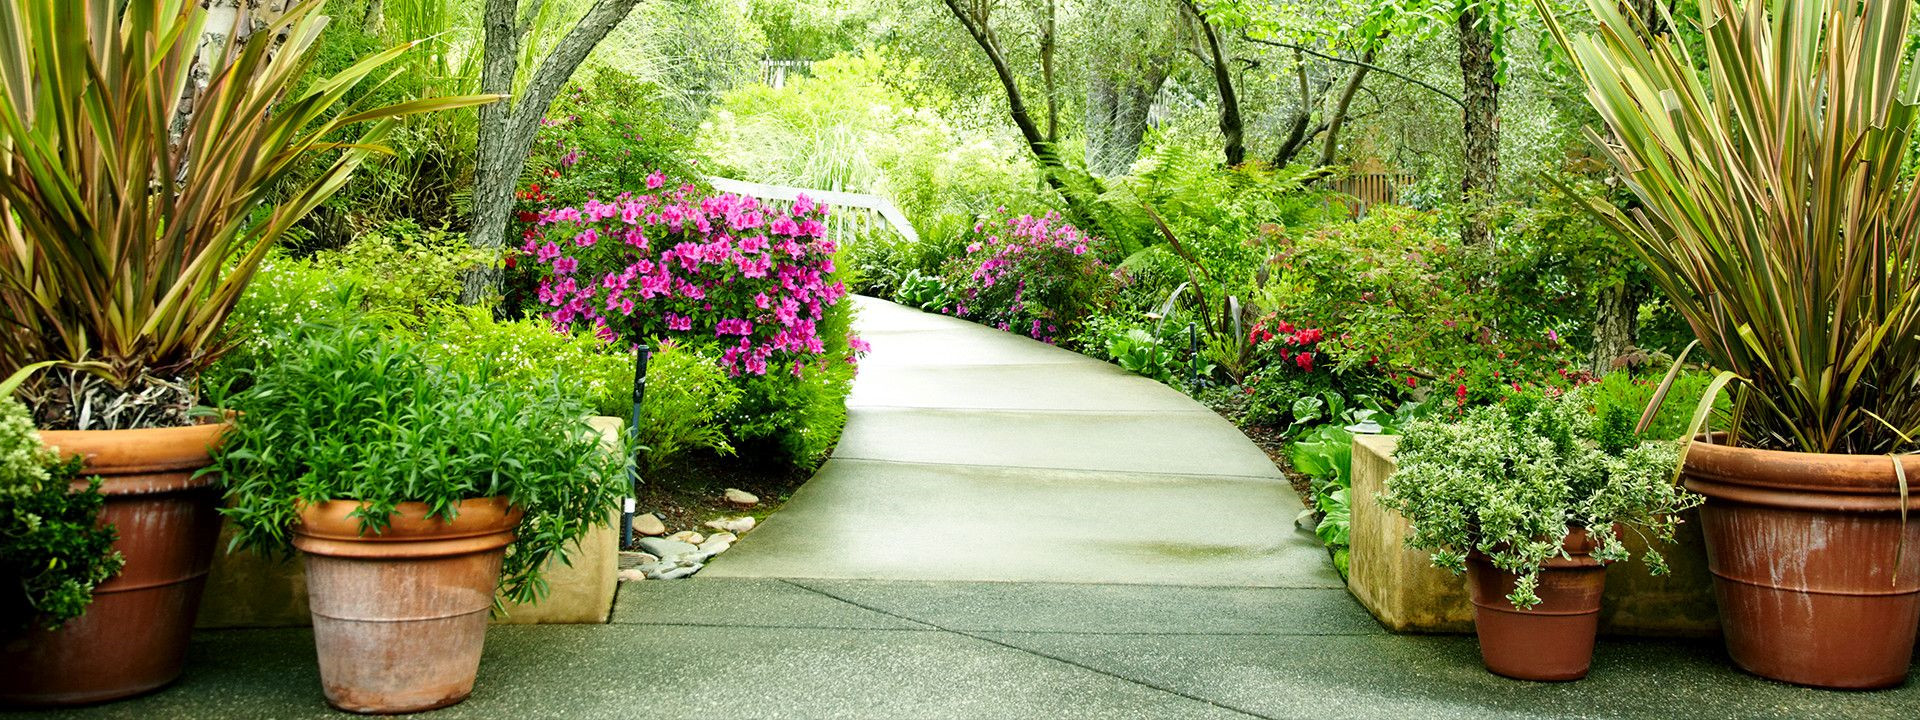 About Us | Serenity Gardens